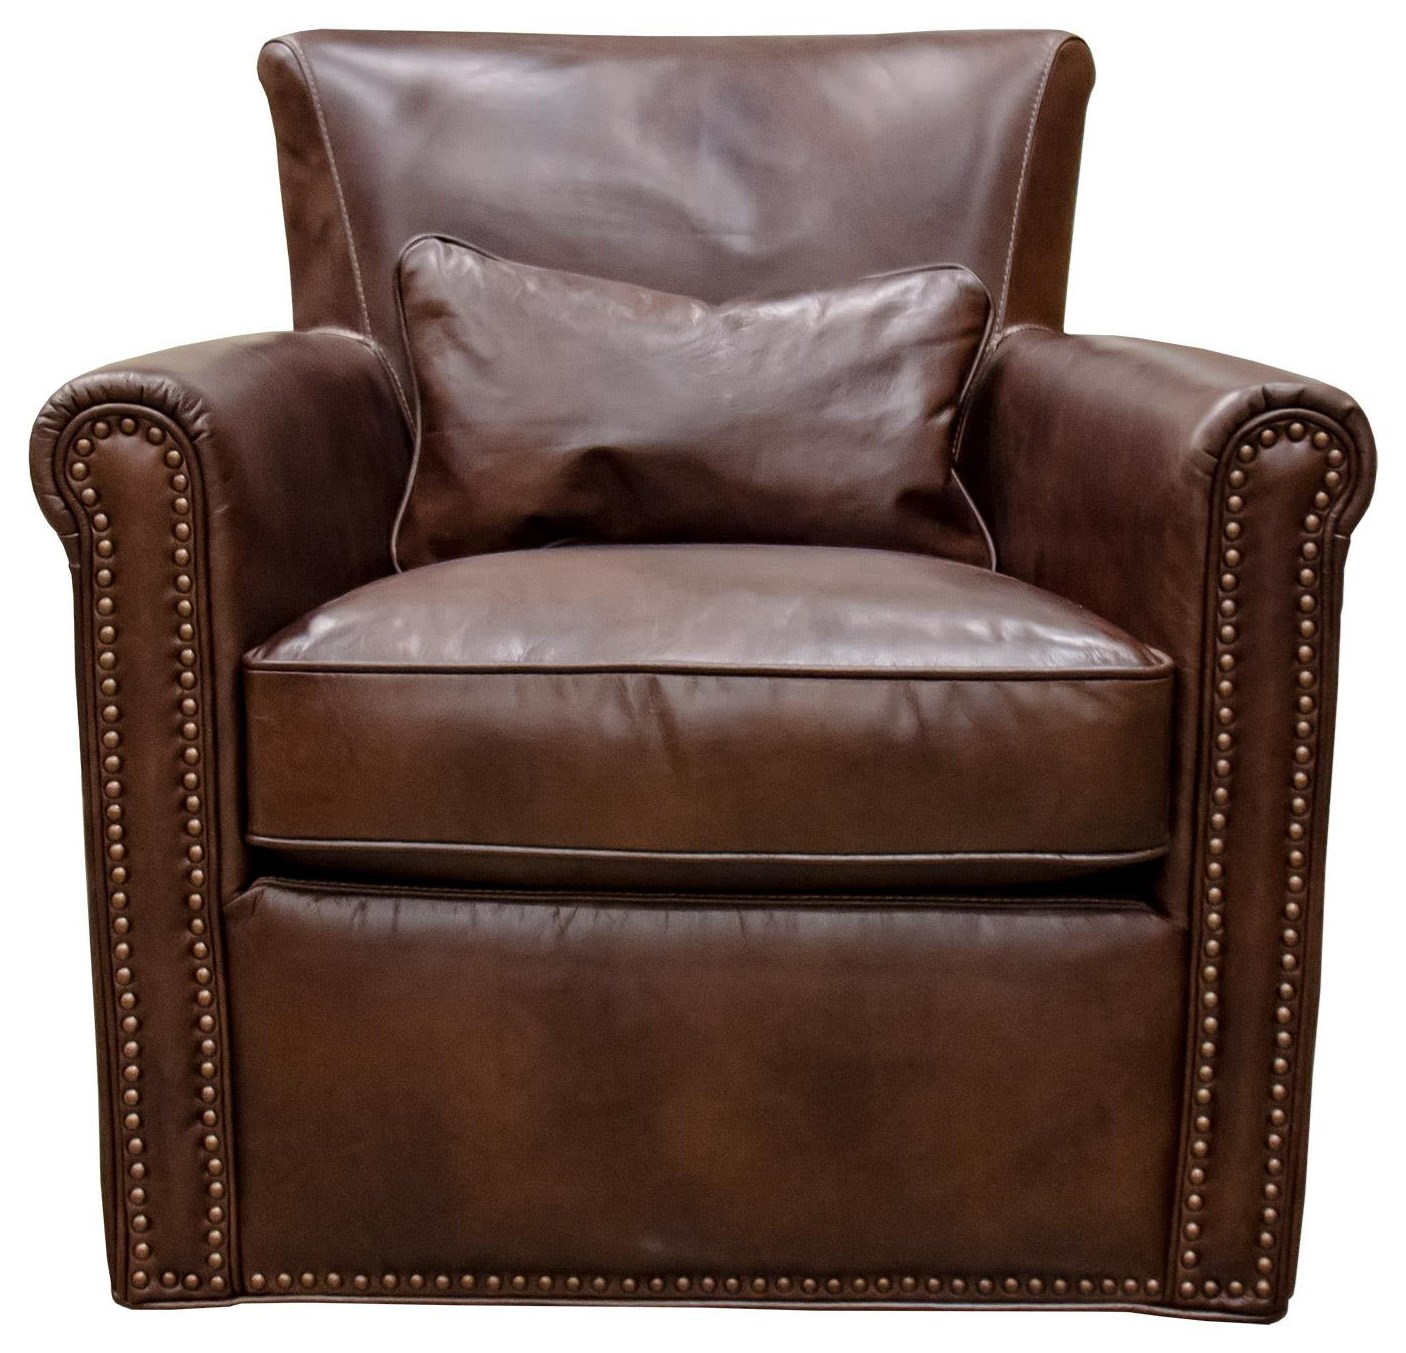 Tobacco Leather Swivel Chair